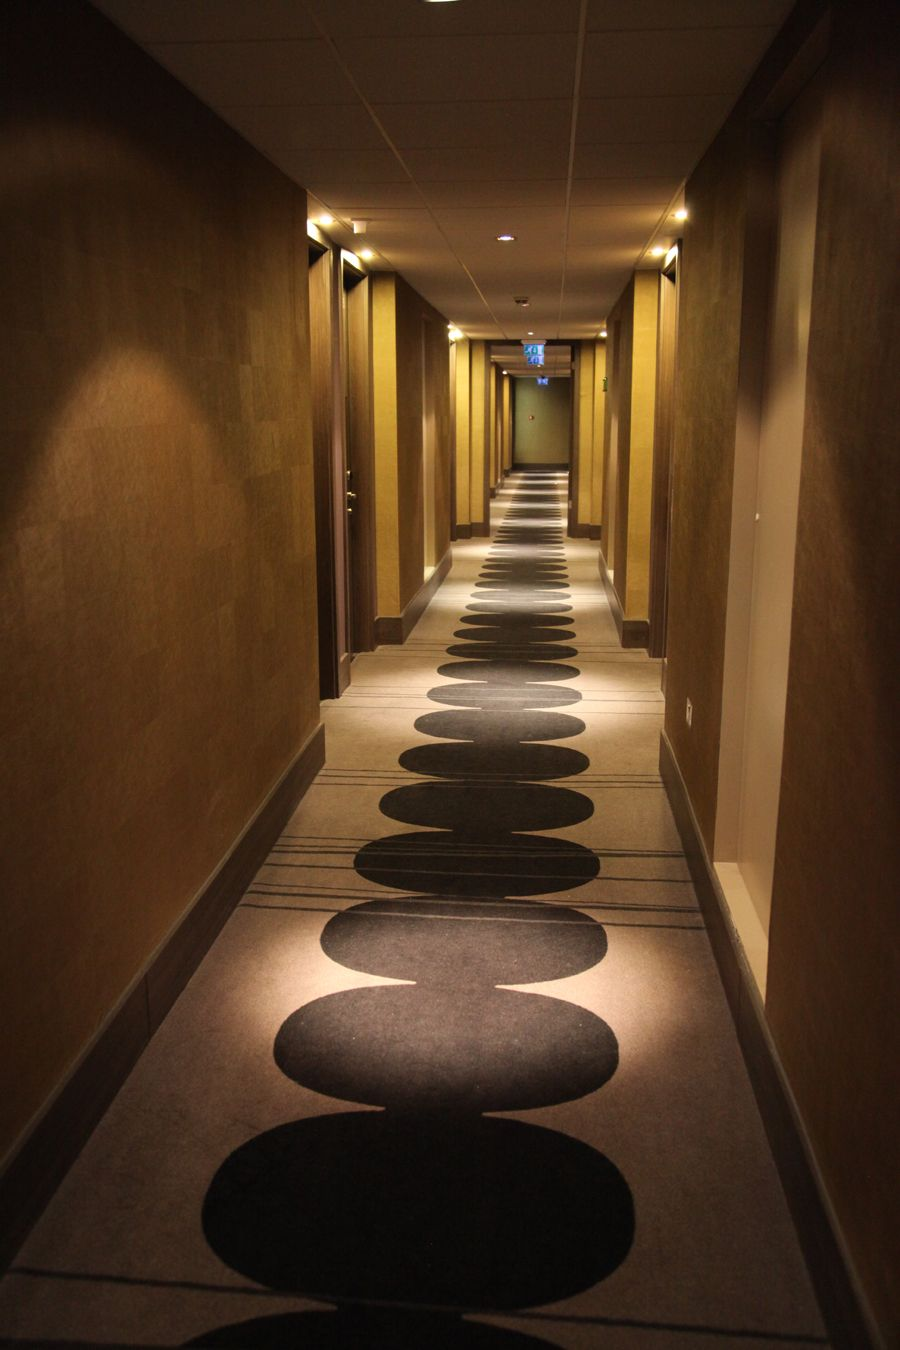 Hotel Room Lighting: Hotel Corridors - Google Search(画像あり)